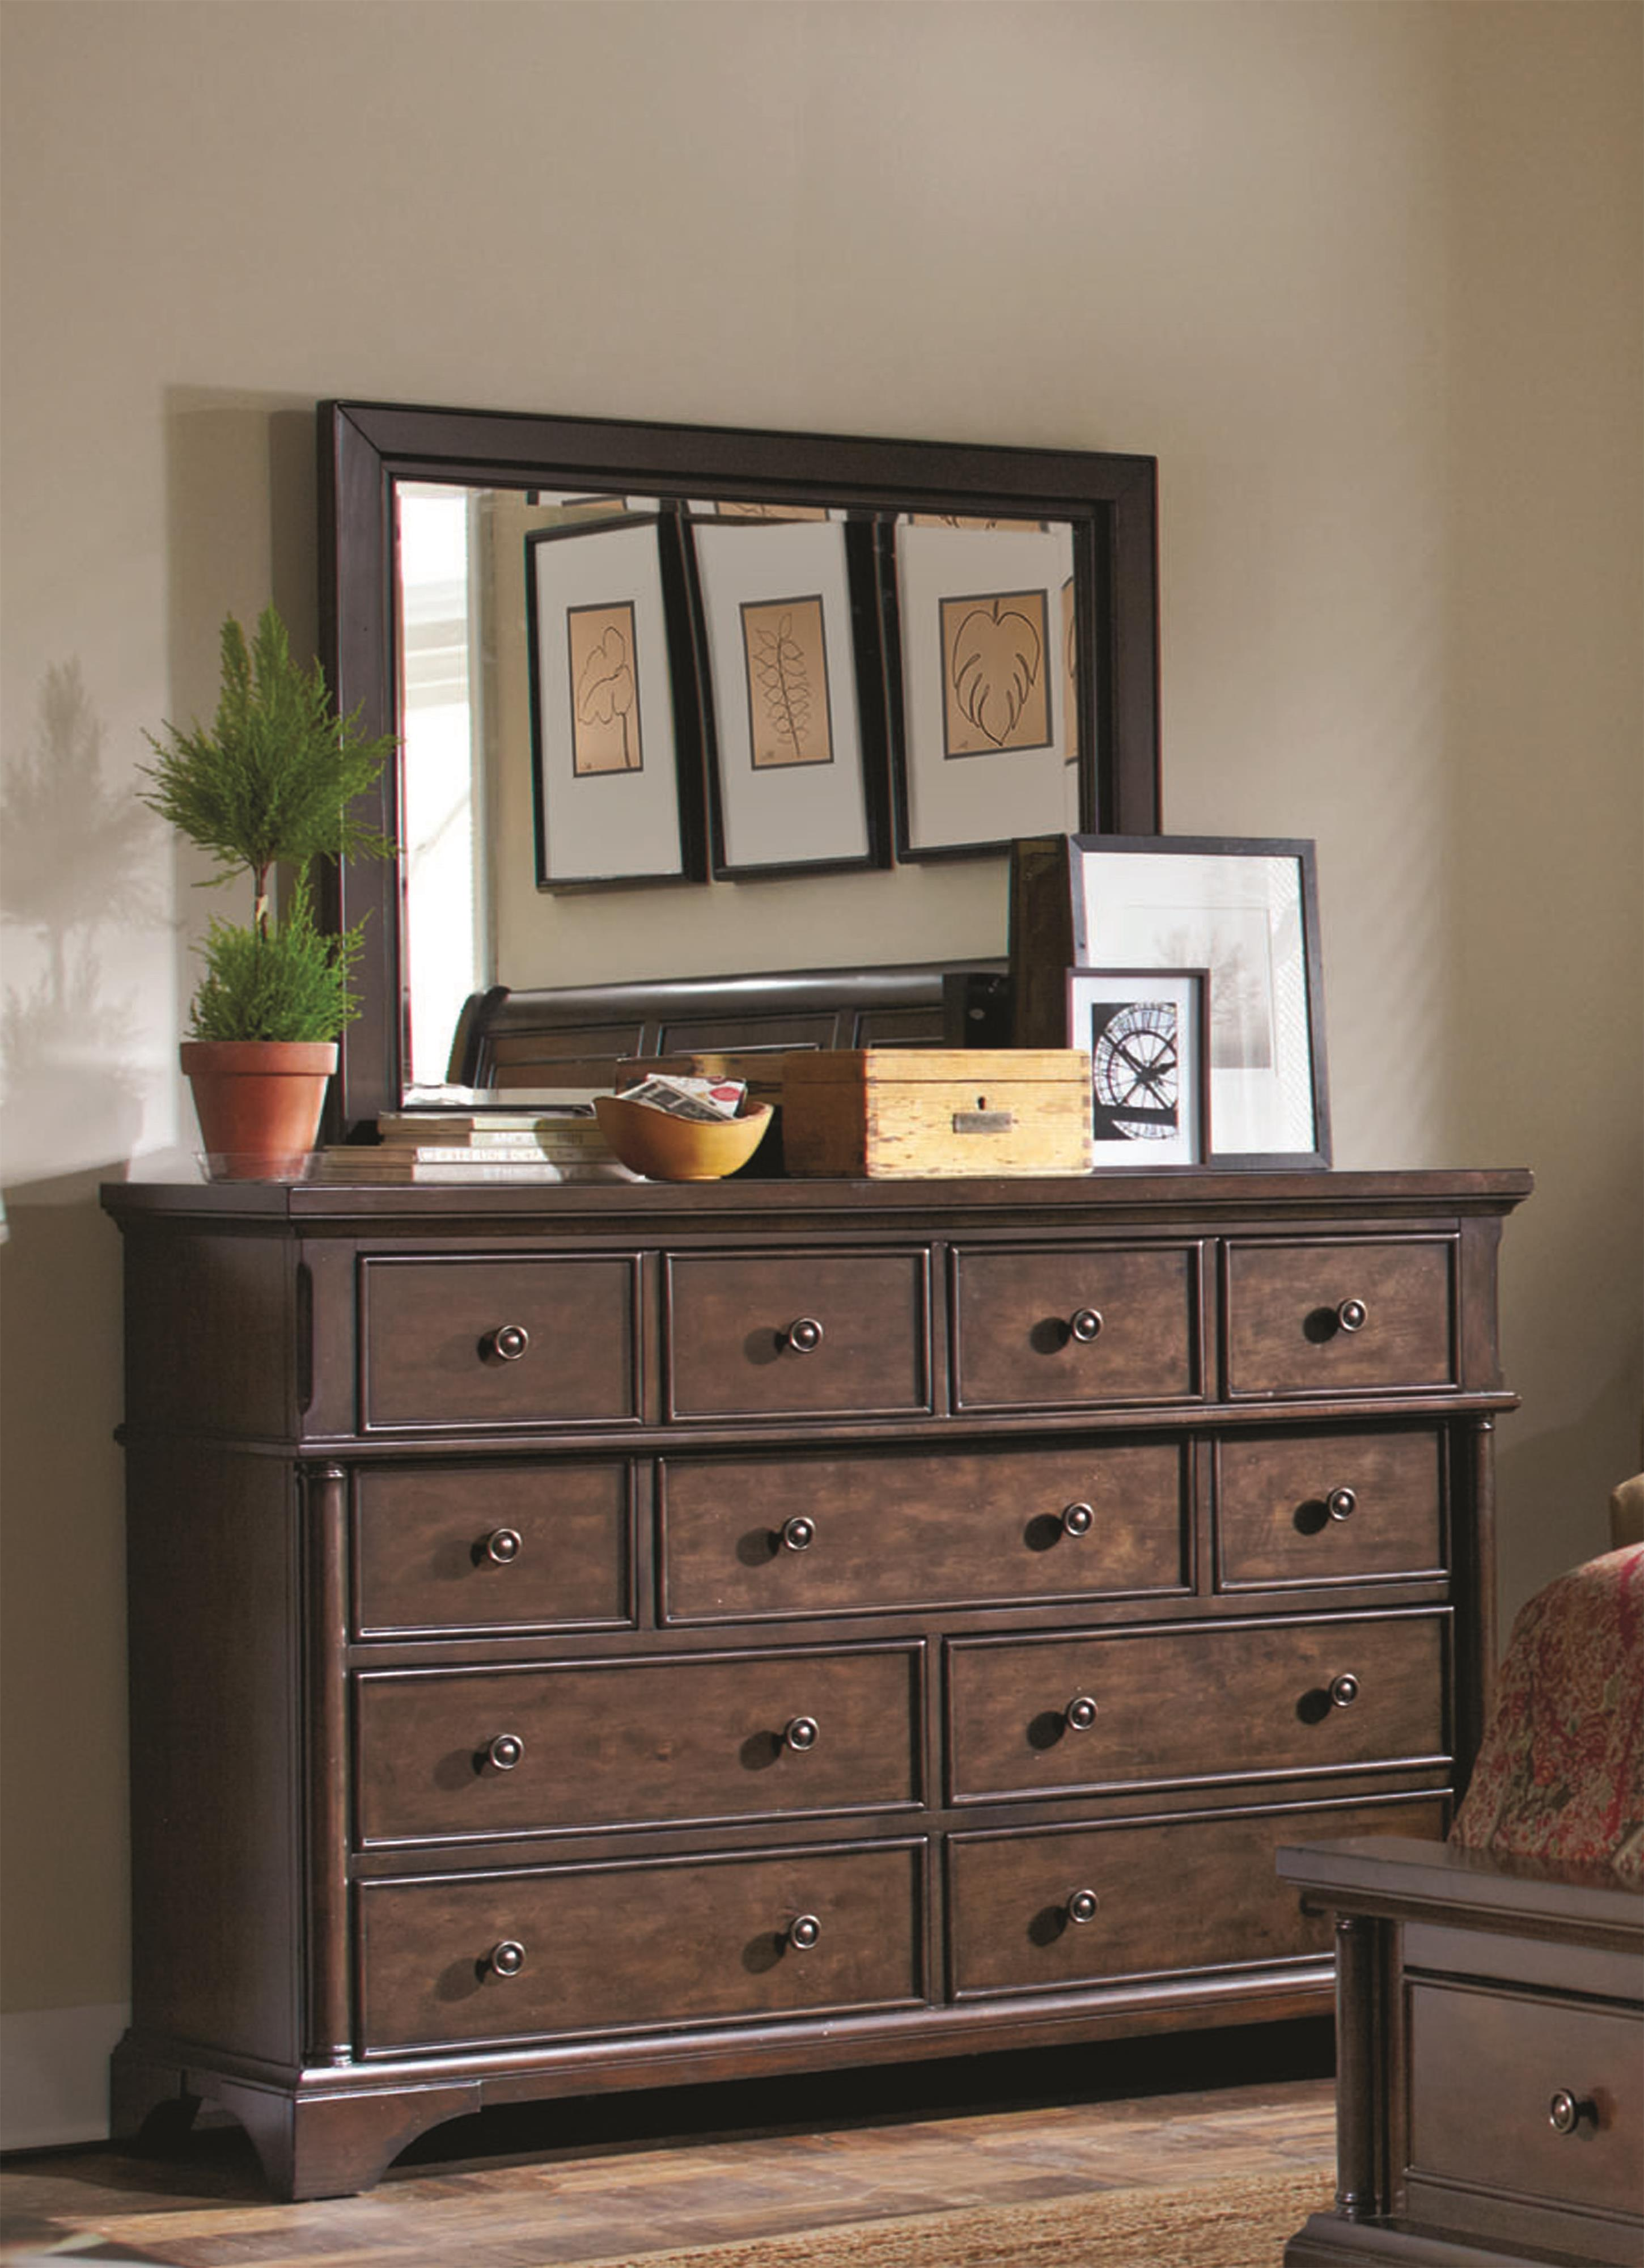 Bancroft Chesser and Mirror by Aspenhome at Stoney Creek Furniture